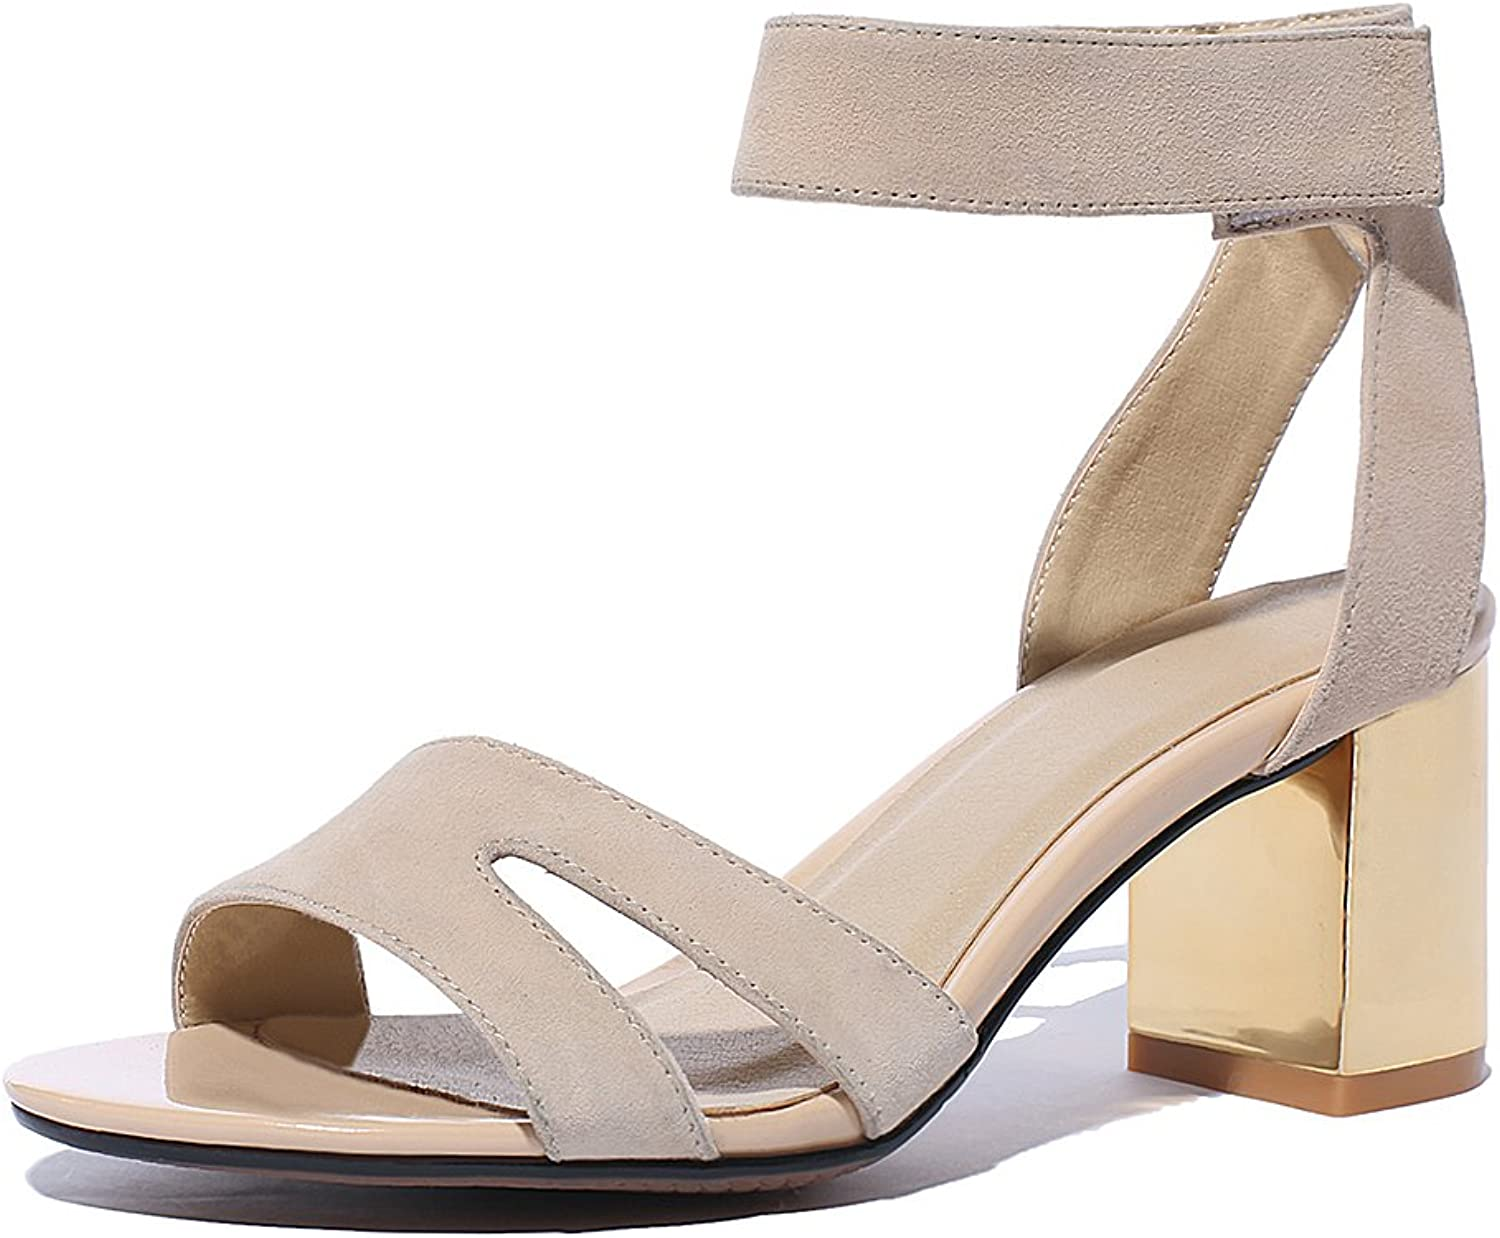 Cuckoo Women's Chunky Heel Ankle Strap Sandals